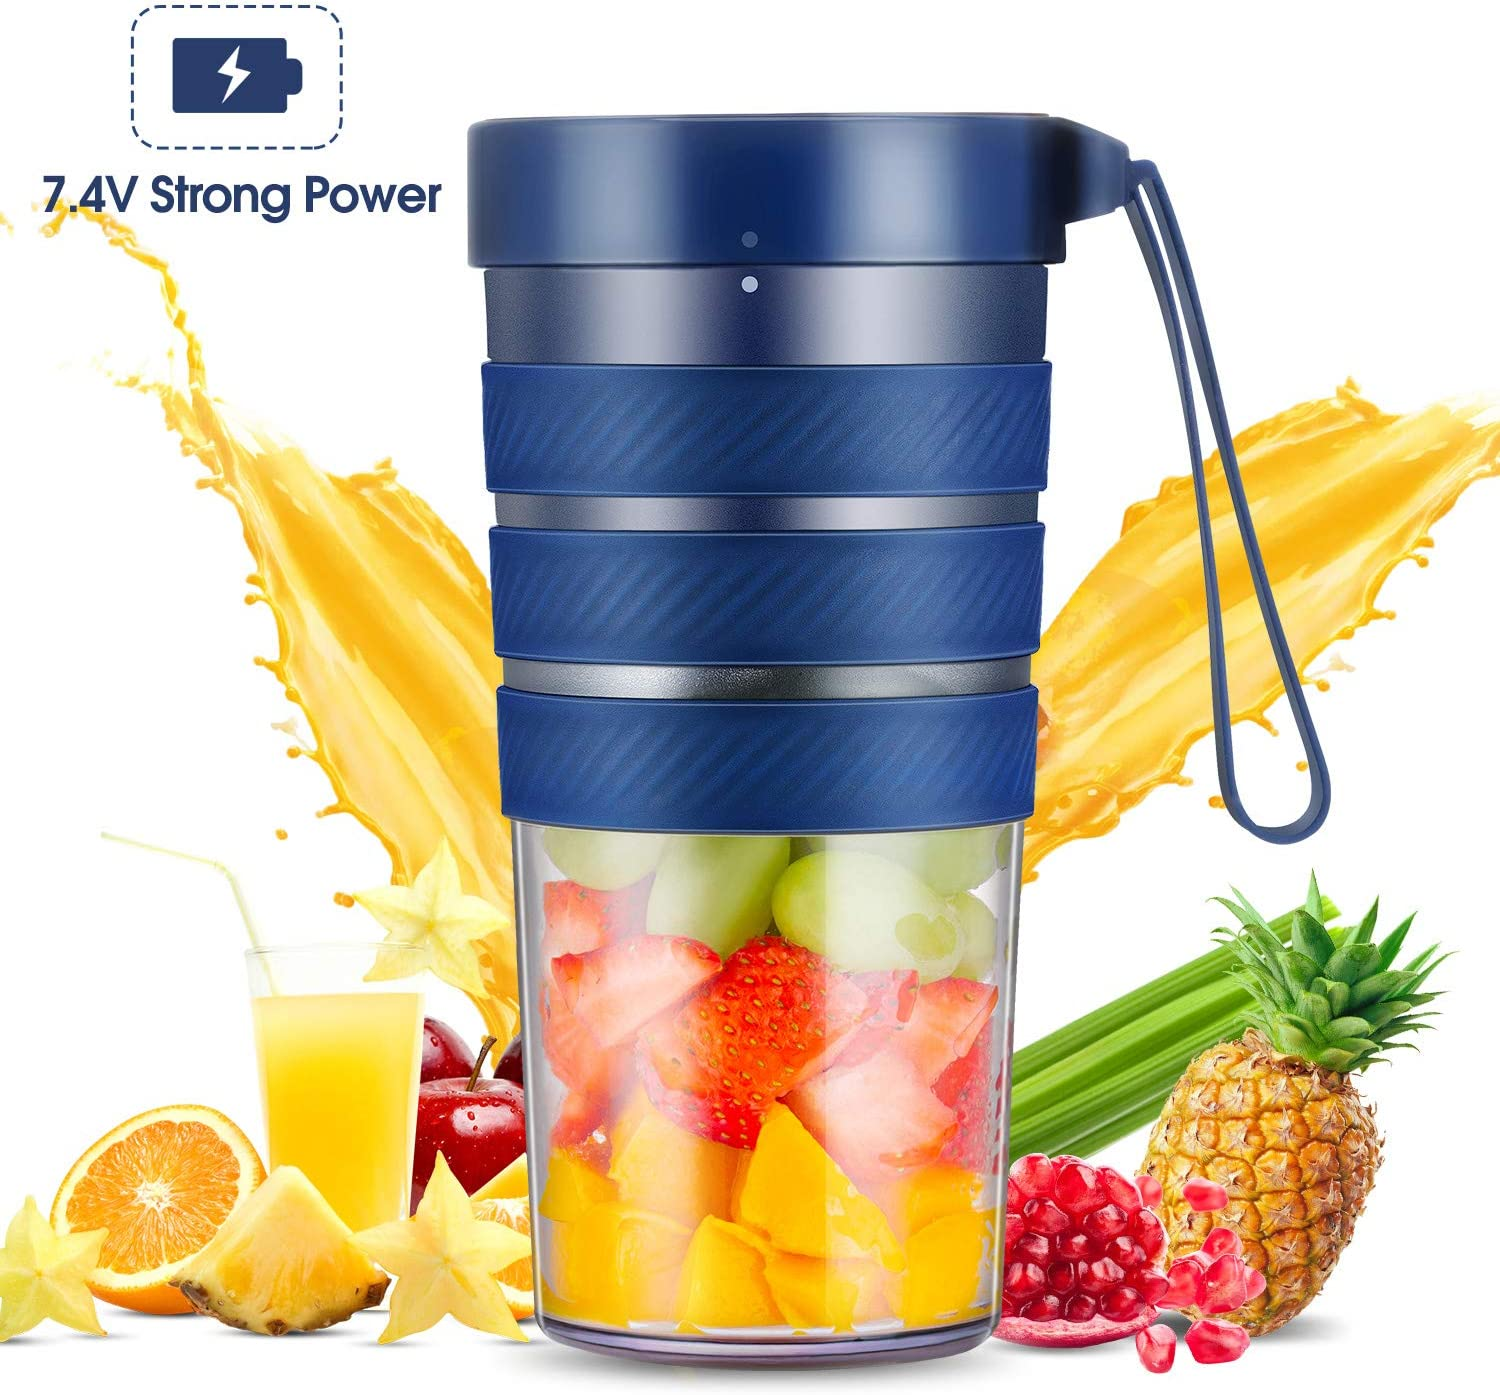 Portable Blender, Mini Smoothie Blender with Rechargeable Battery 7.4V Strong Power, 10oz Cordless Personal Blender Fruit Juicer Mixer for Office Gym Outdoors Travel, IP68 Waterproof, BPA Free